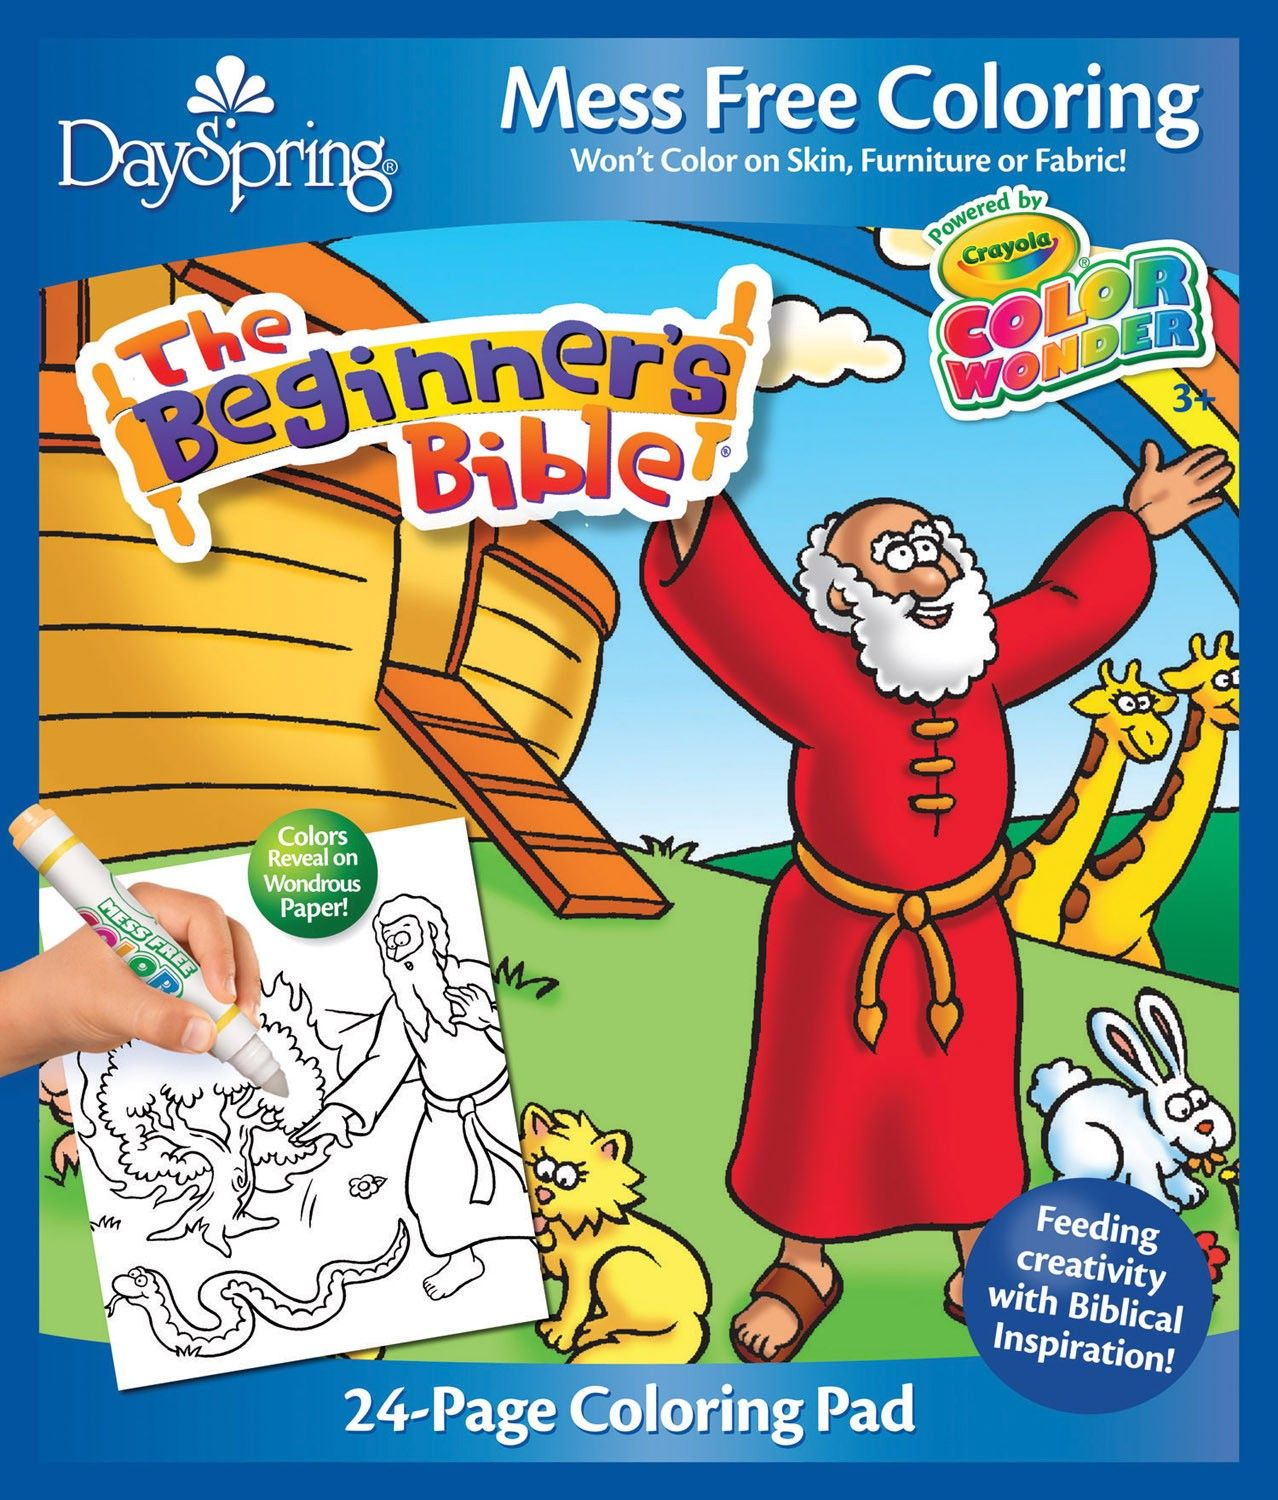 Enjoy magically mess-free coloring with your favorite stories of the ...